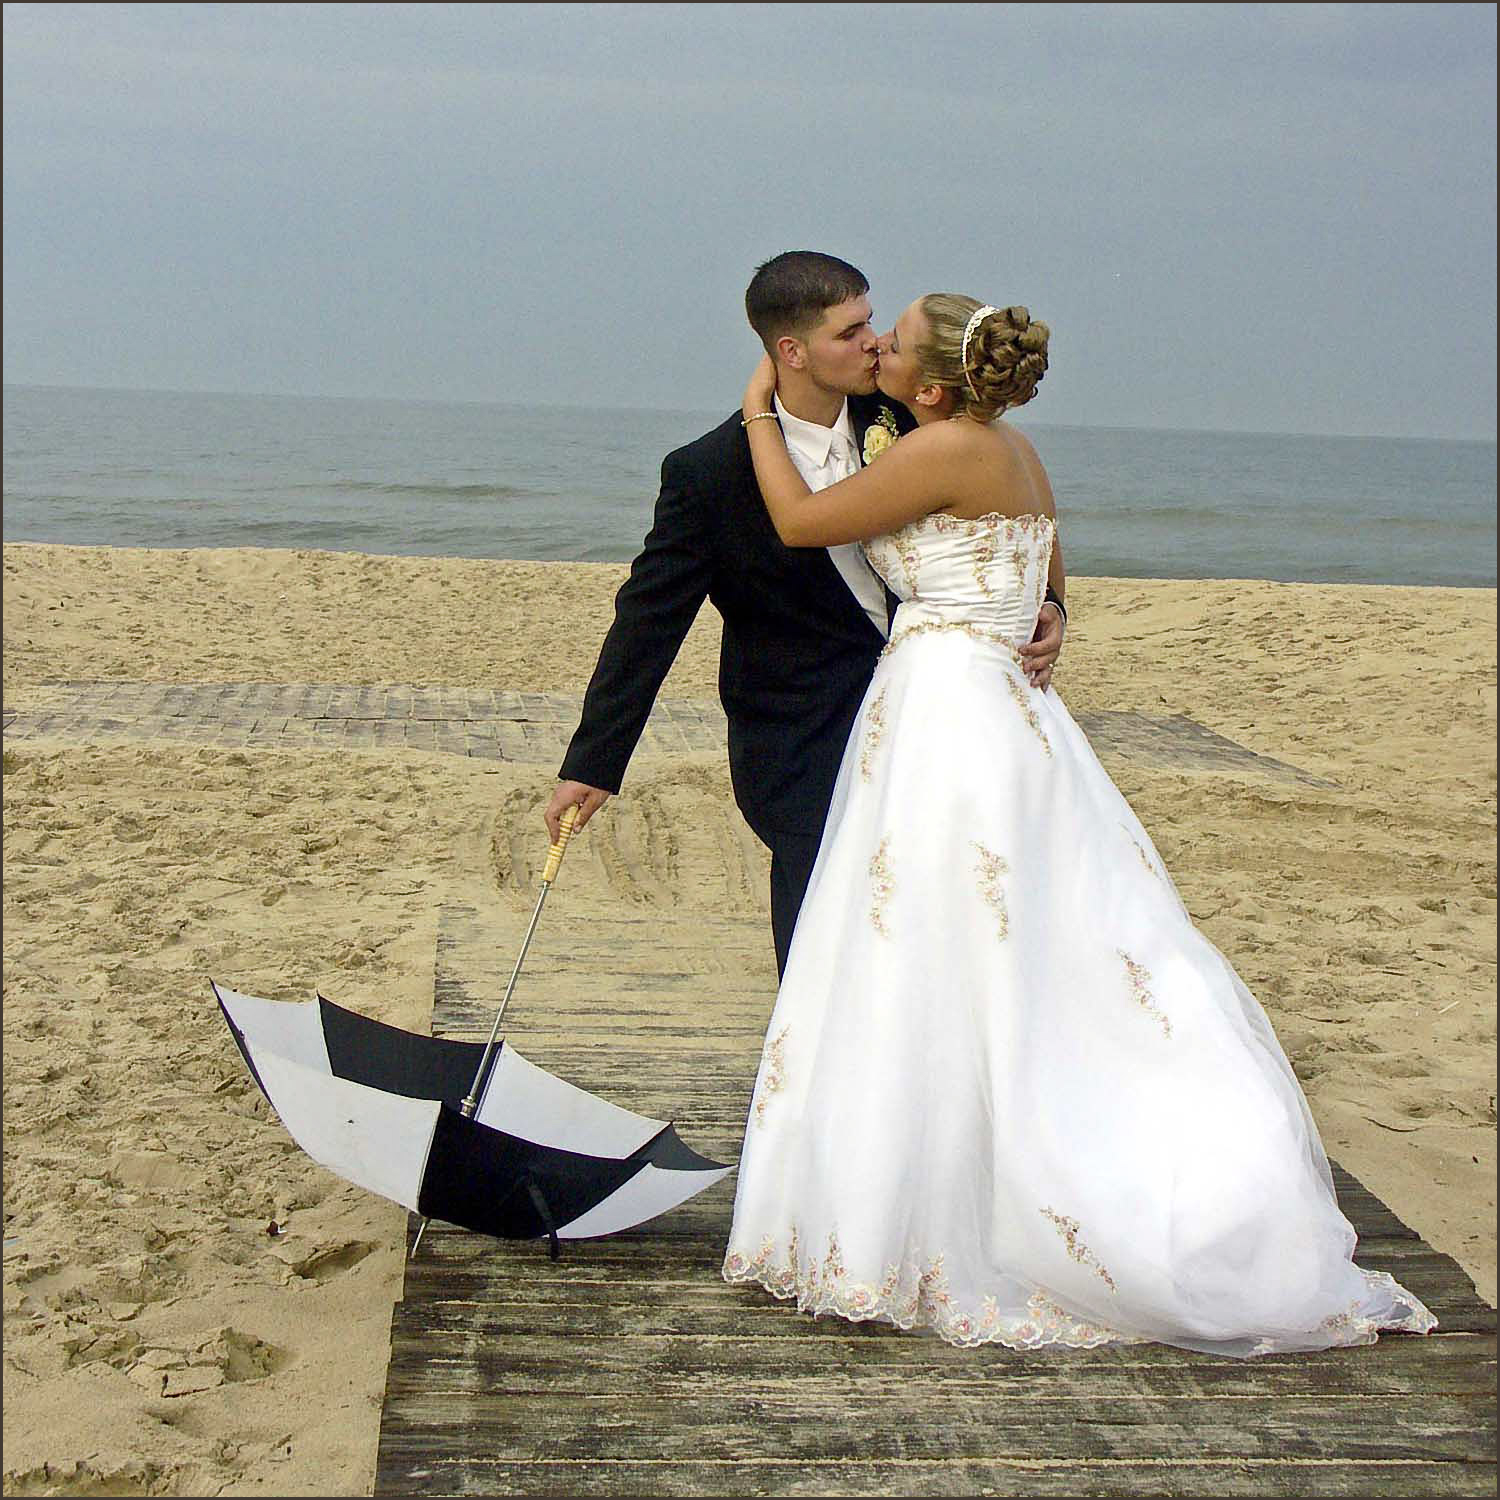 Virginia beach bride and groom kissing